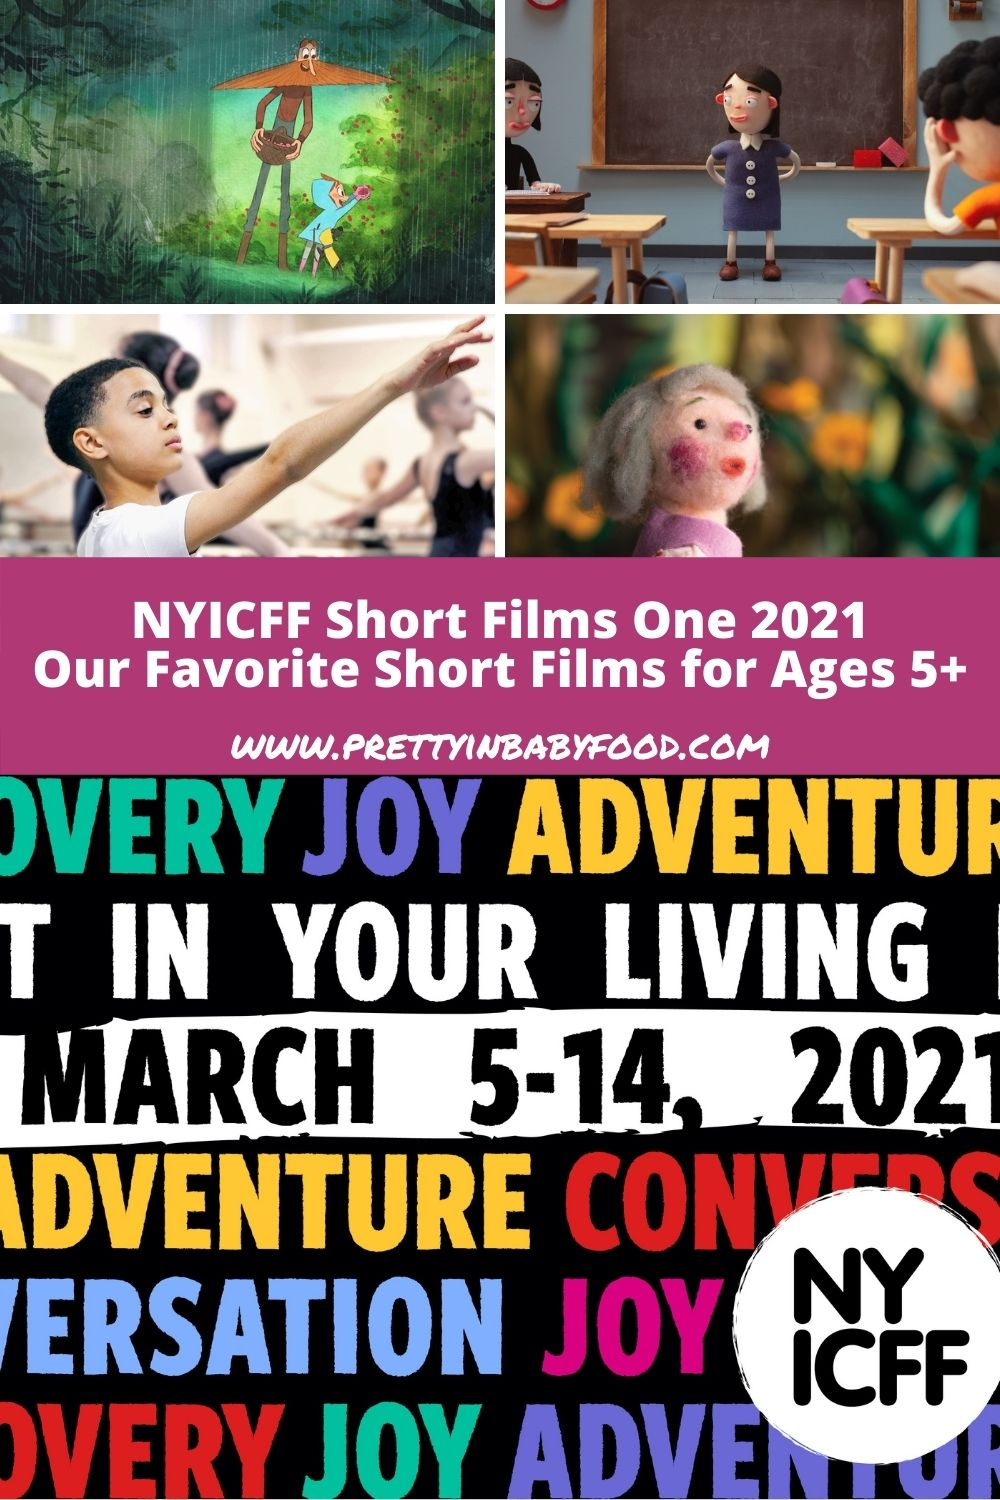 NYICFF Short Films One 2021: Our Favorite Films for Ages 5+